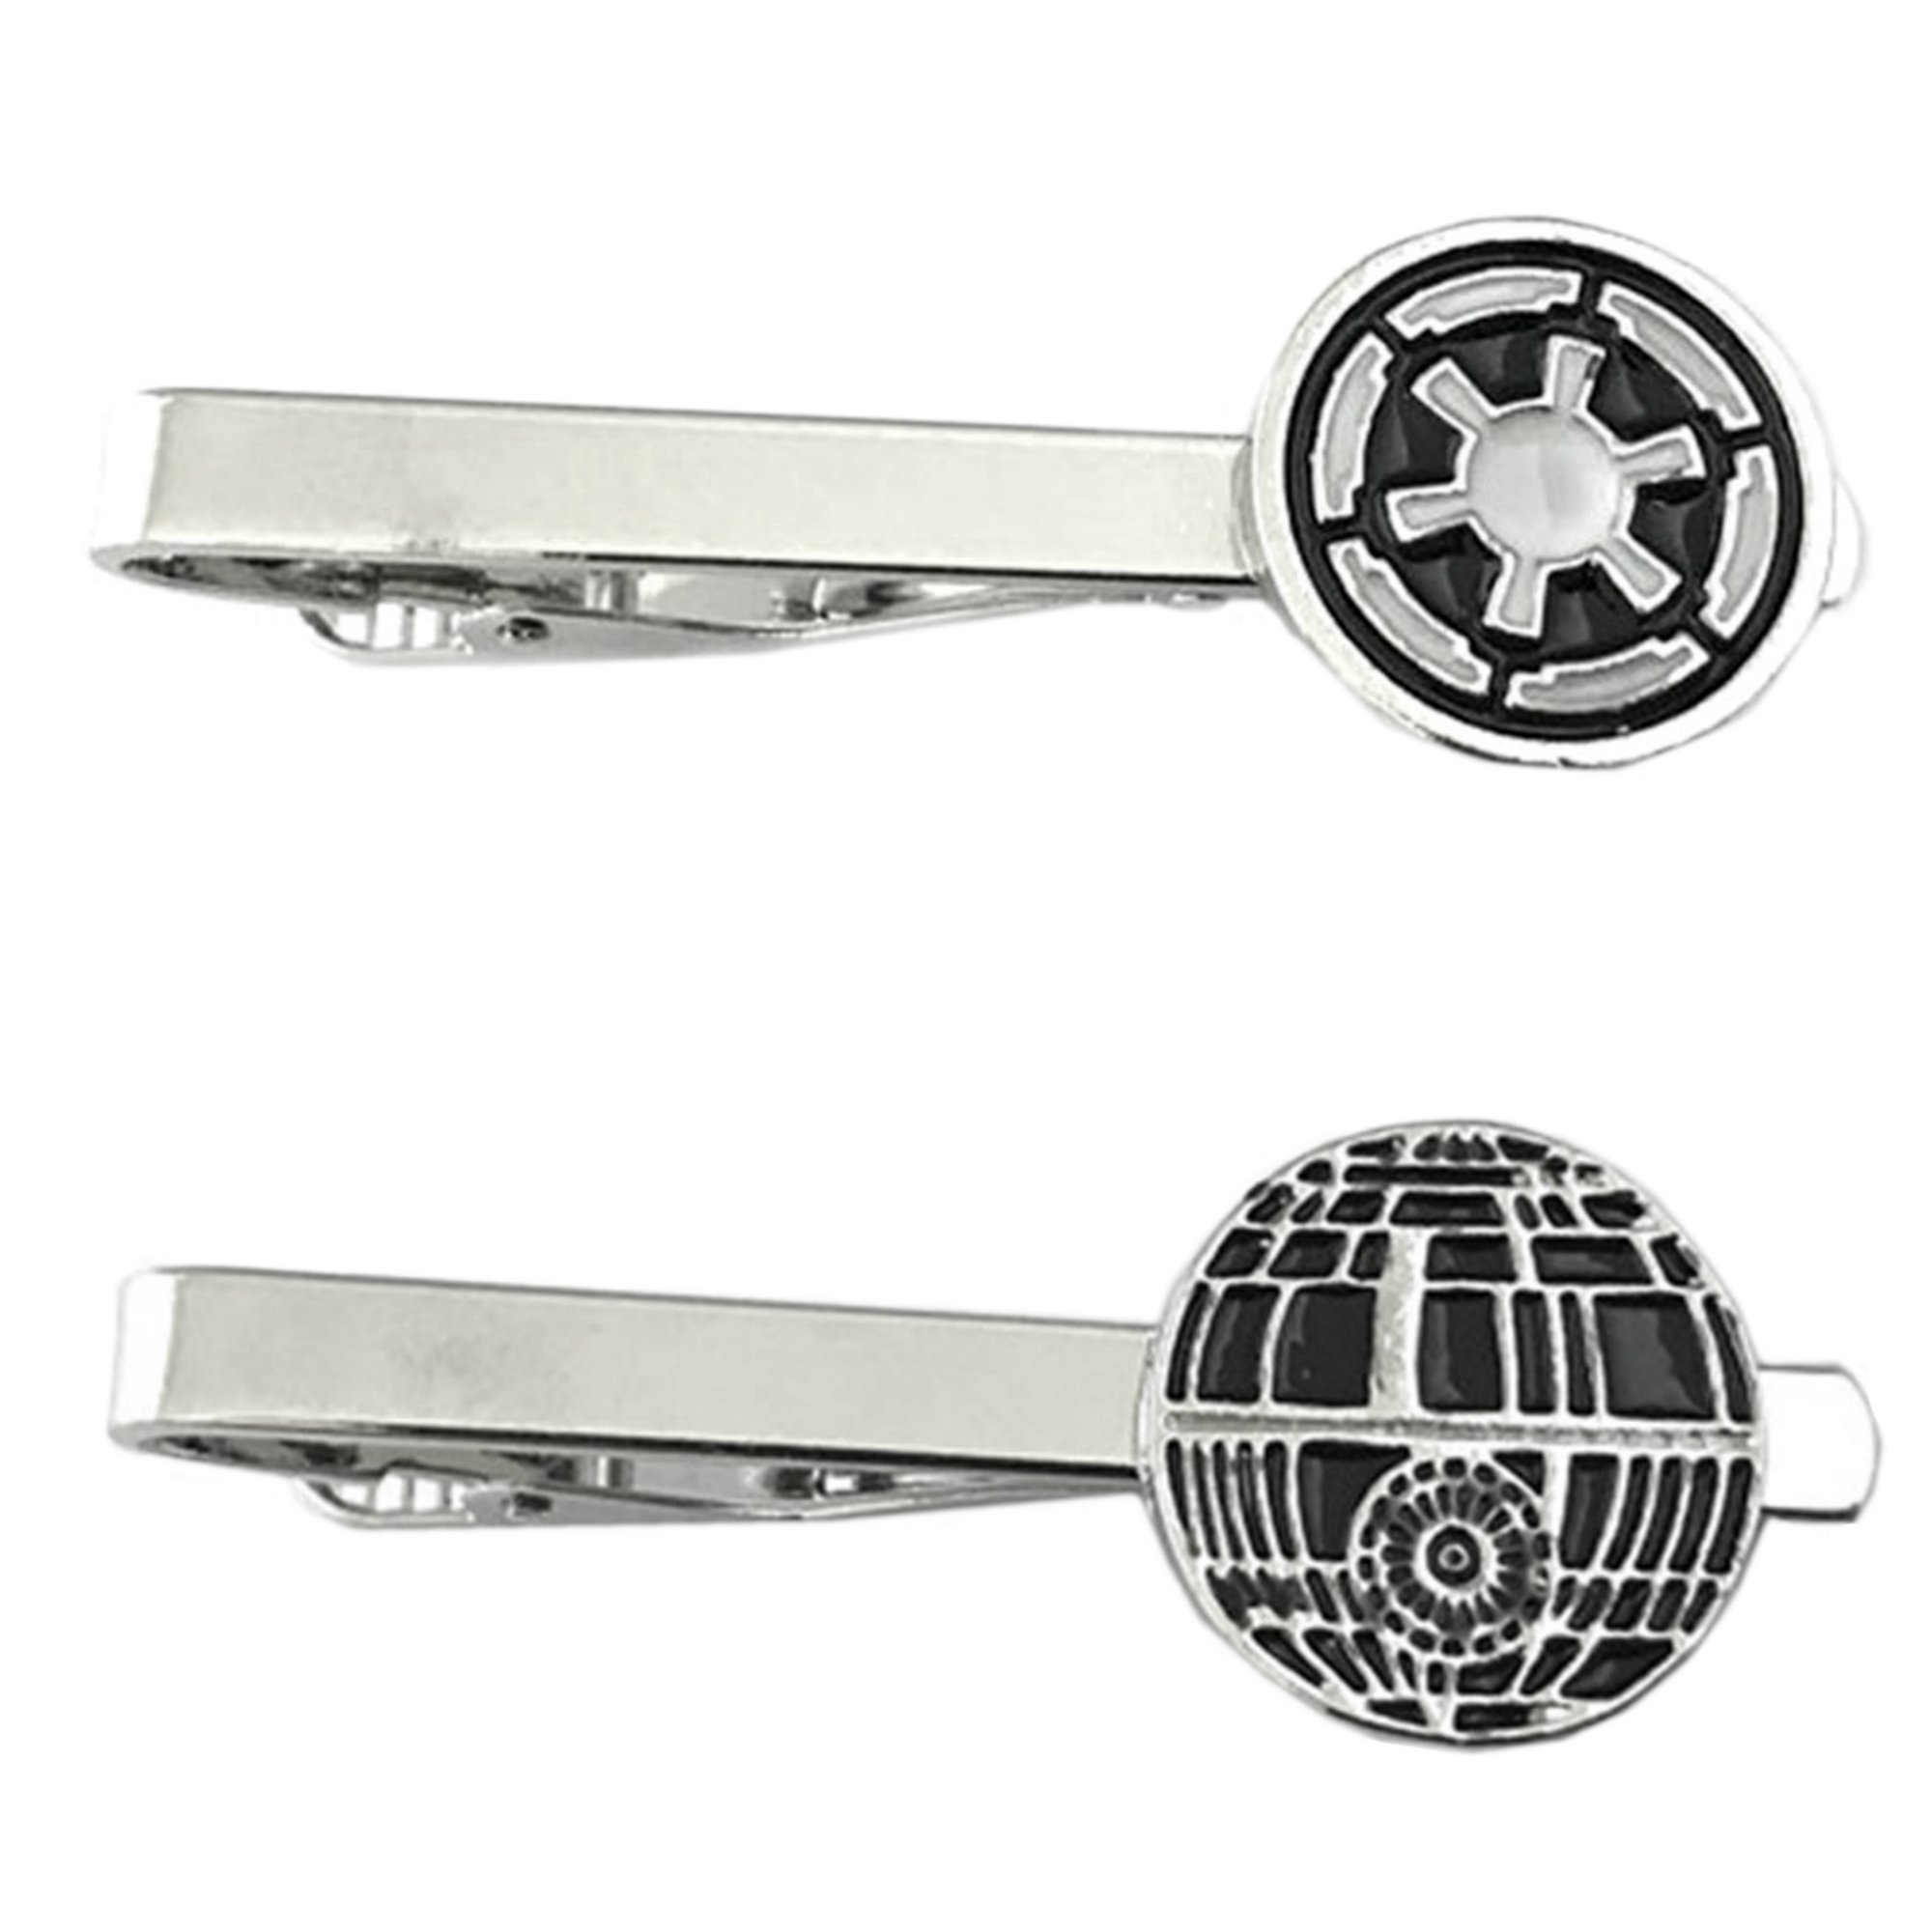 Outlander Star Wars - Imperial & Death Star - Tiebar Tie Clasp Set of 2 Wedding Superhero Logo w/Gift Box